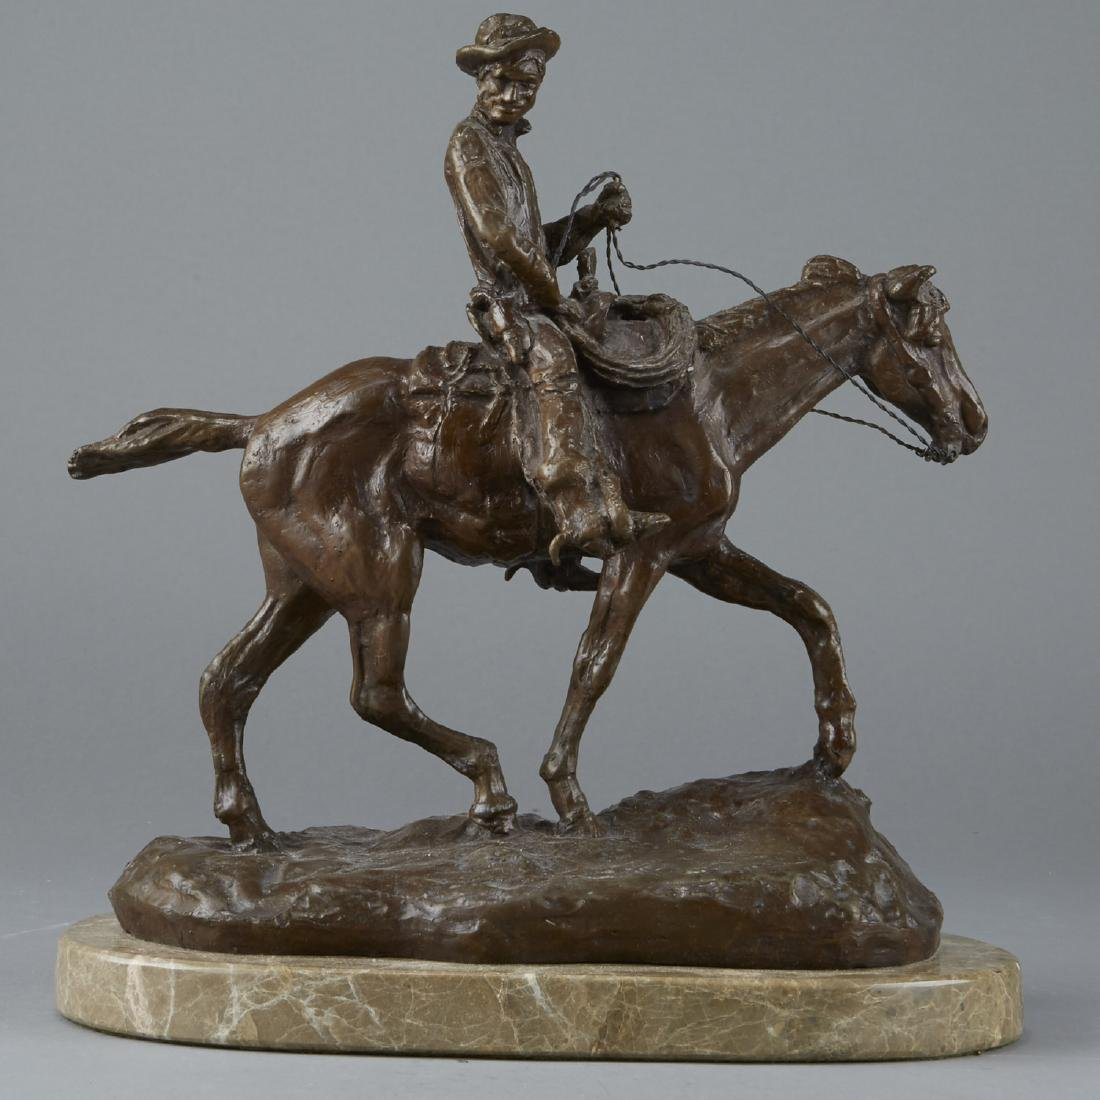 Equestrian Sculpture After Charles Russell